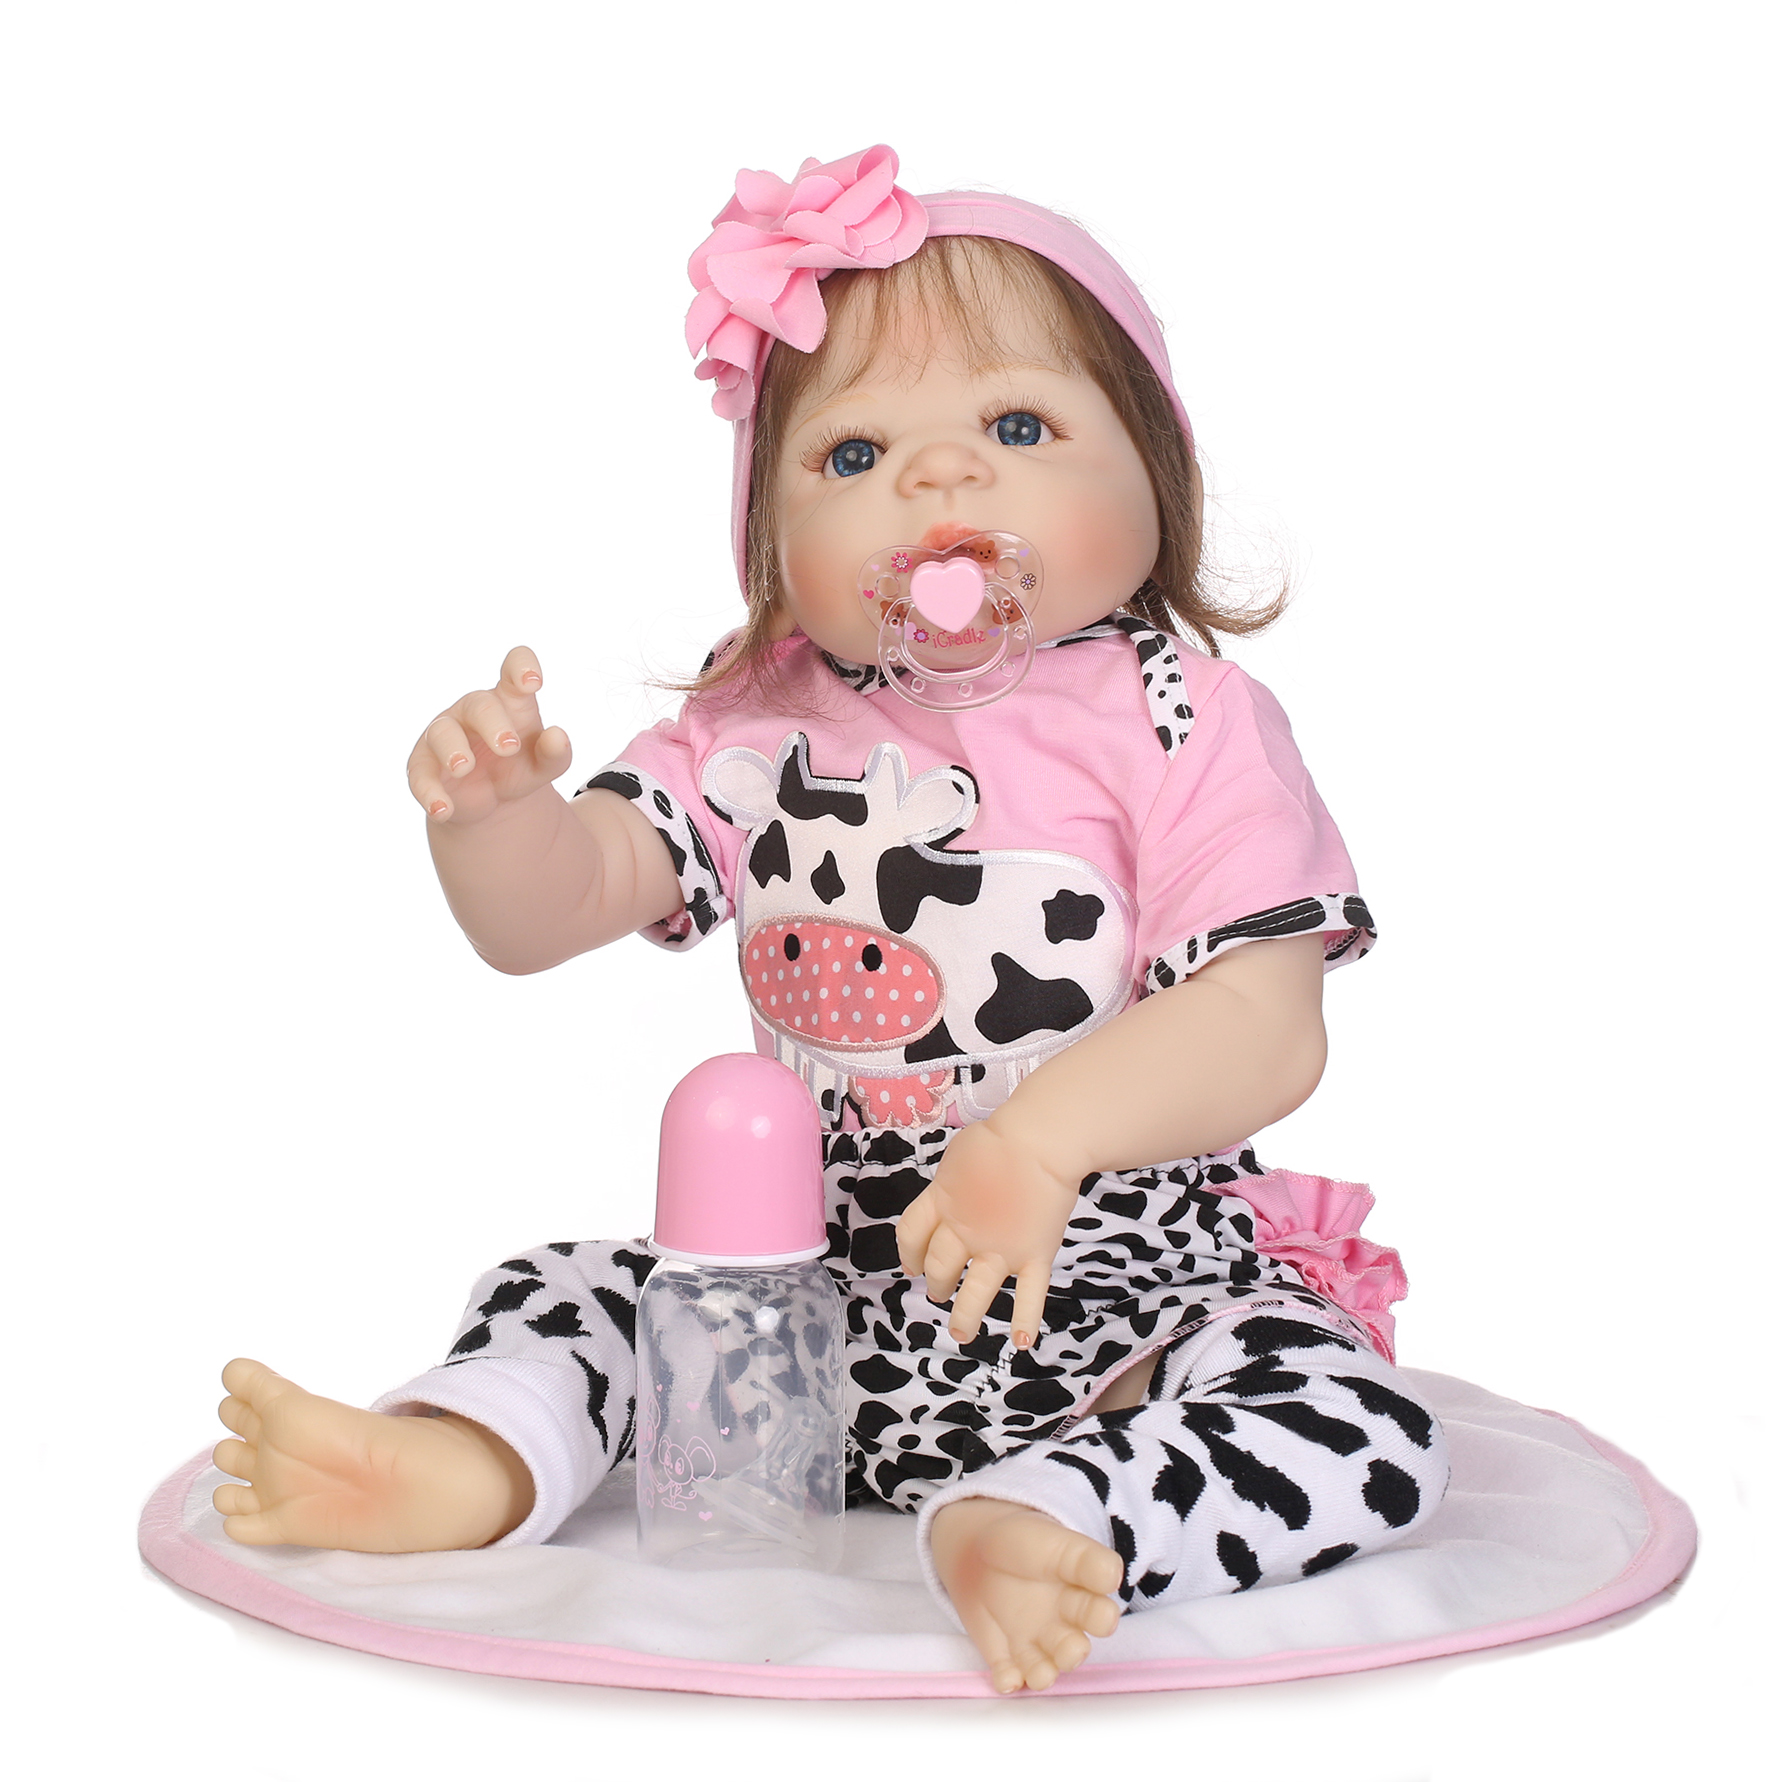 57cm Full Silicone Reborn Baby Doll Toy for Girls Vinyl Newborn Dolls Kids Child Gift Birthday Christmas Girl Brinquedos Toys silicone reborn baby doll toy lifelike reborn baby dolls children birthday christmas gift toys for girls brinquedos with swaddle